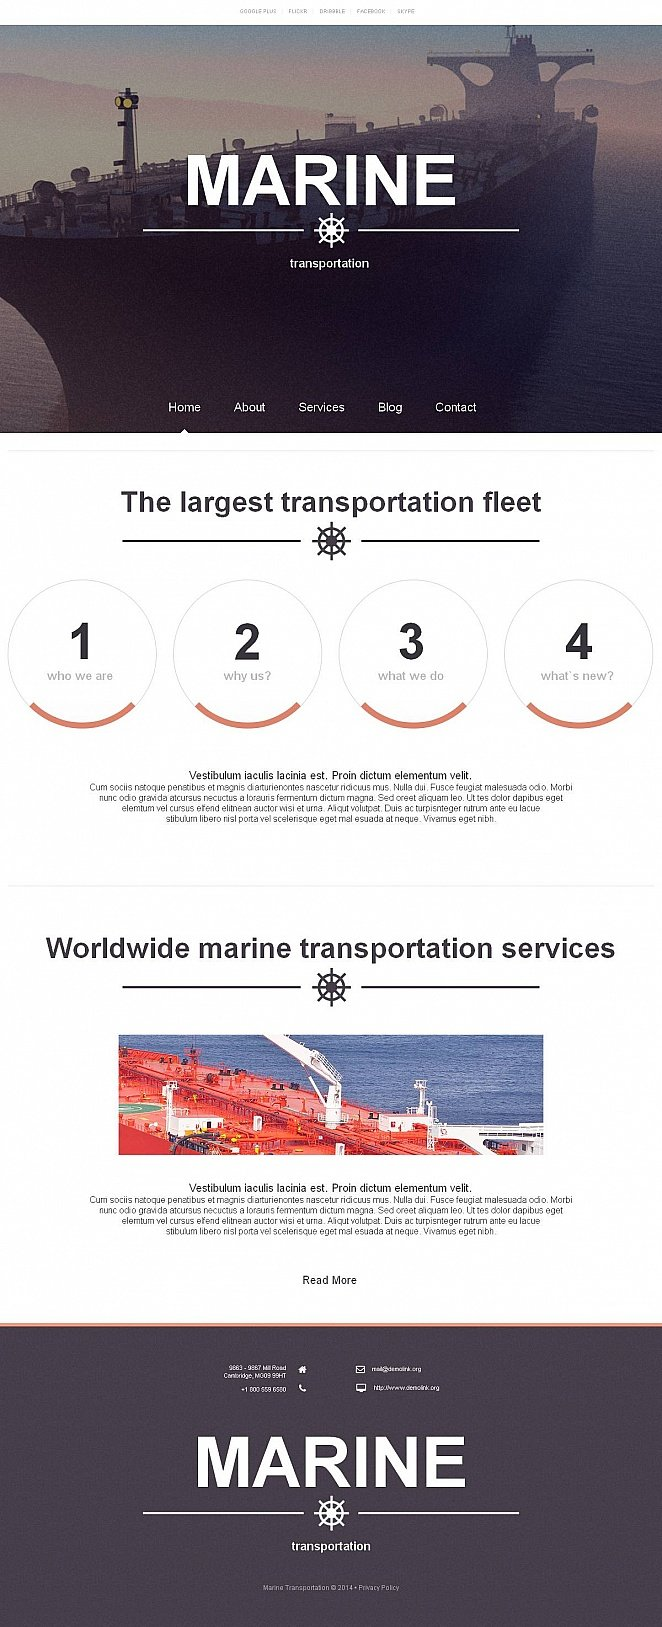 Marine Transportation Website Template with Large Header Image - image